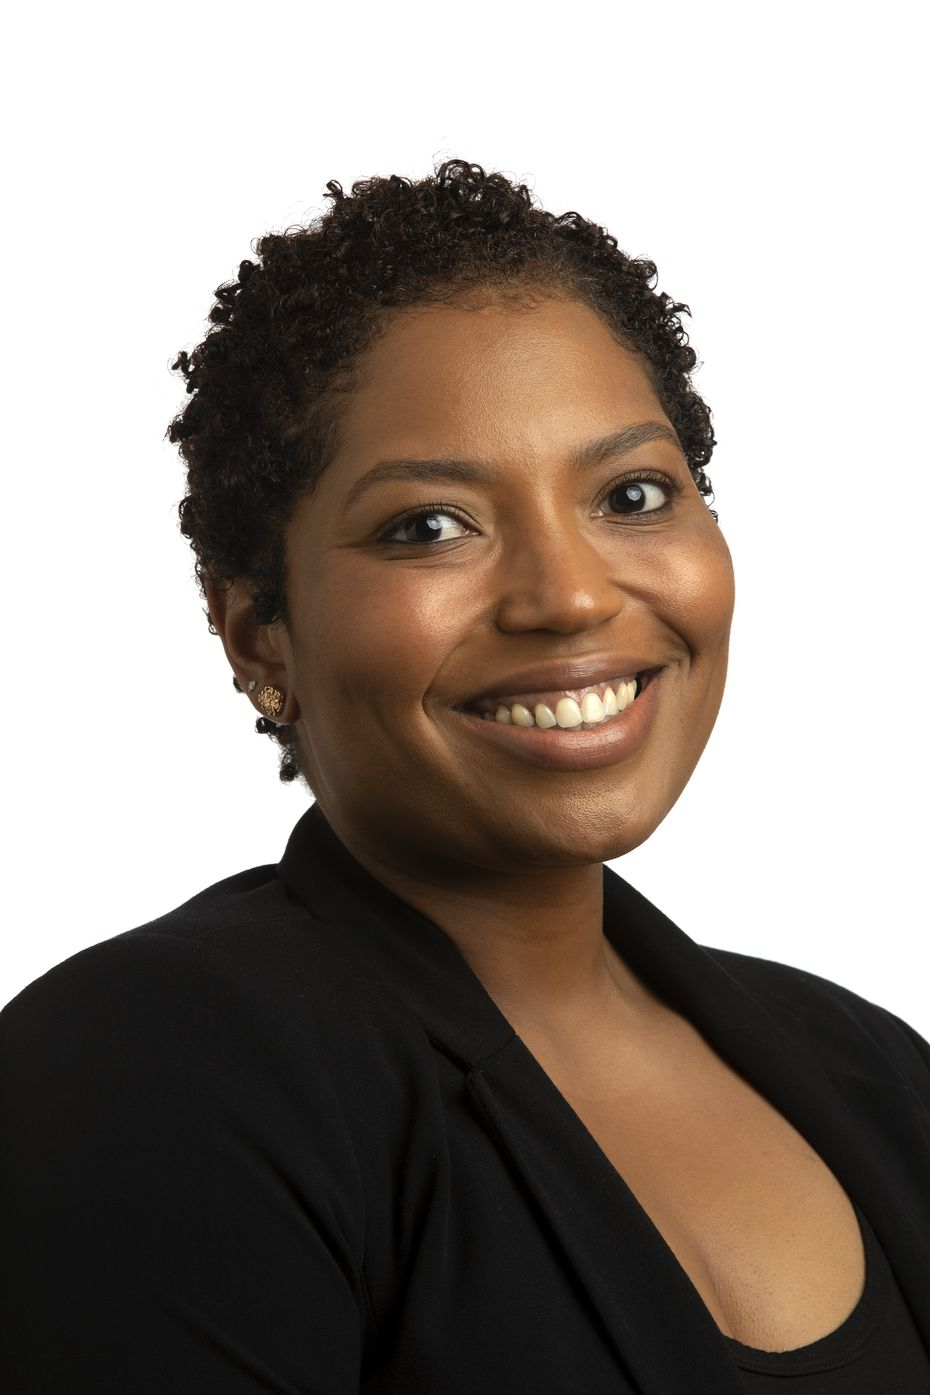 Erica Spears is an assistant professor at the University of North Texas Health Science Center's School of Public Health.